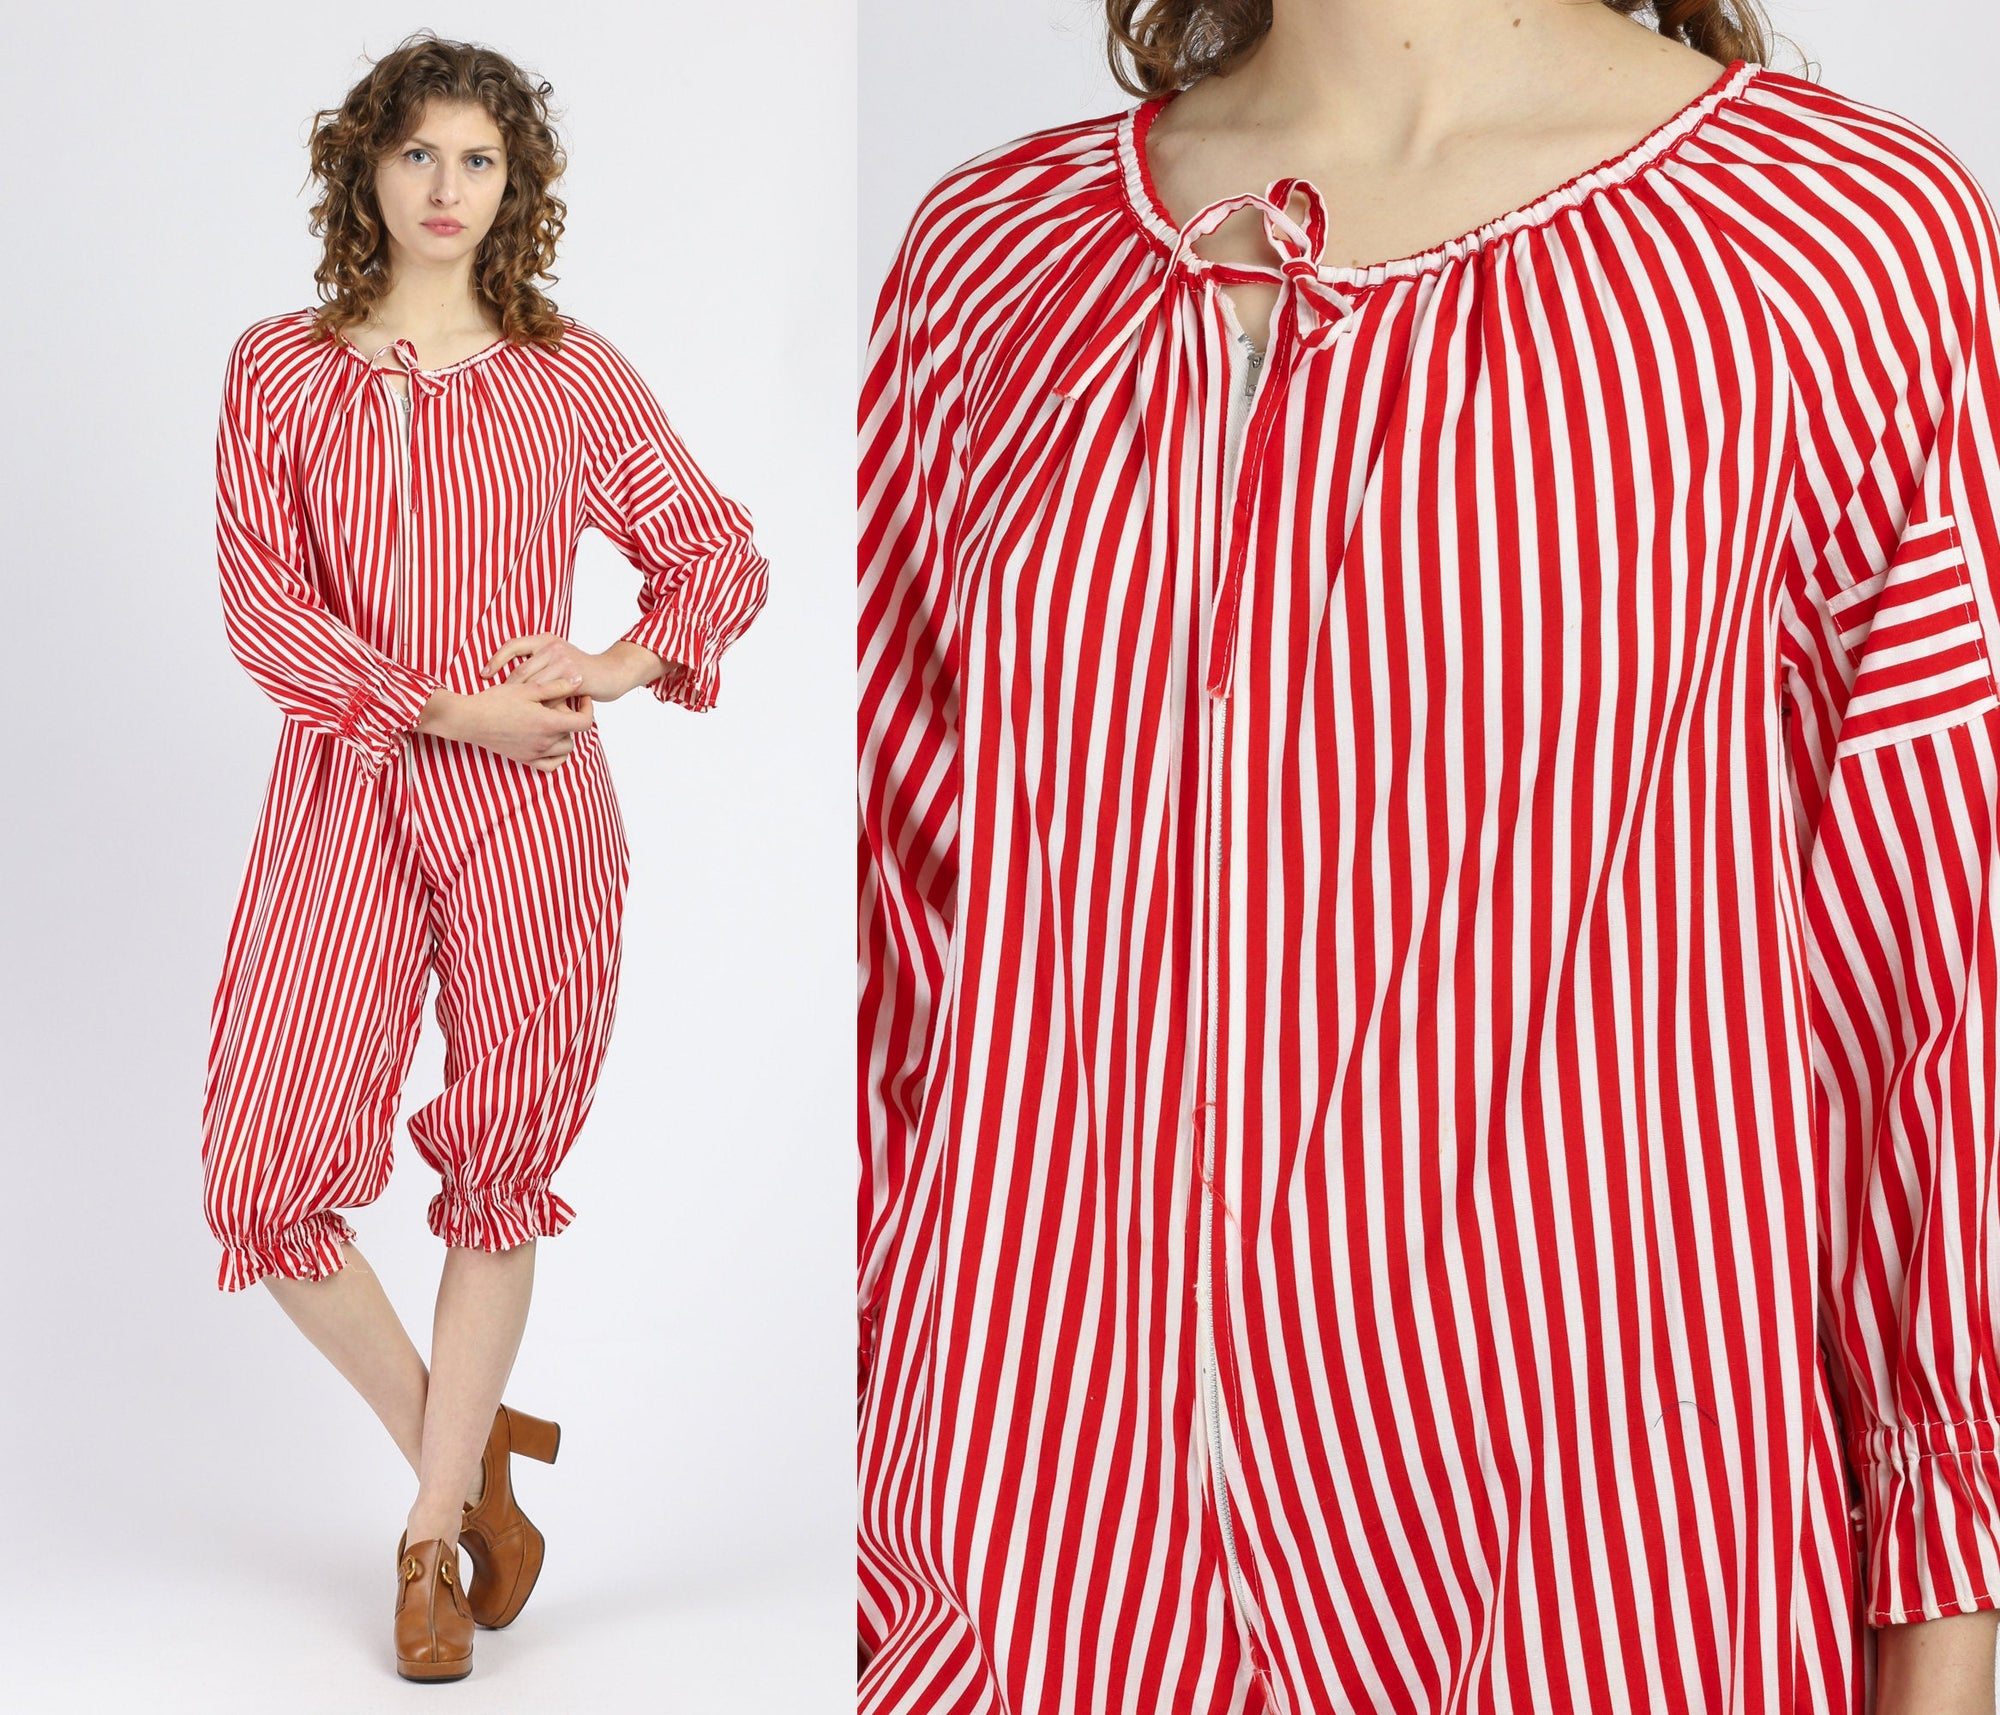 Vintage Striped Onesie Circus Costume - One Size, Petite